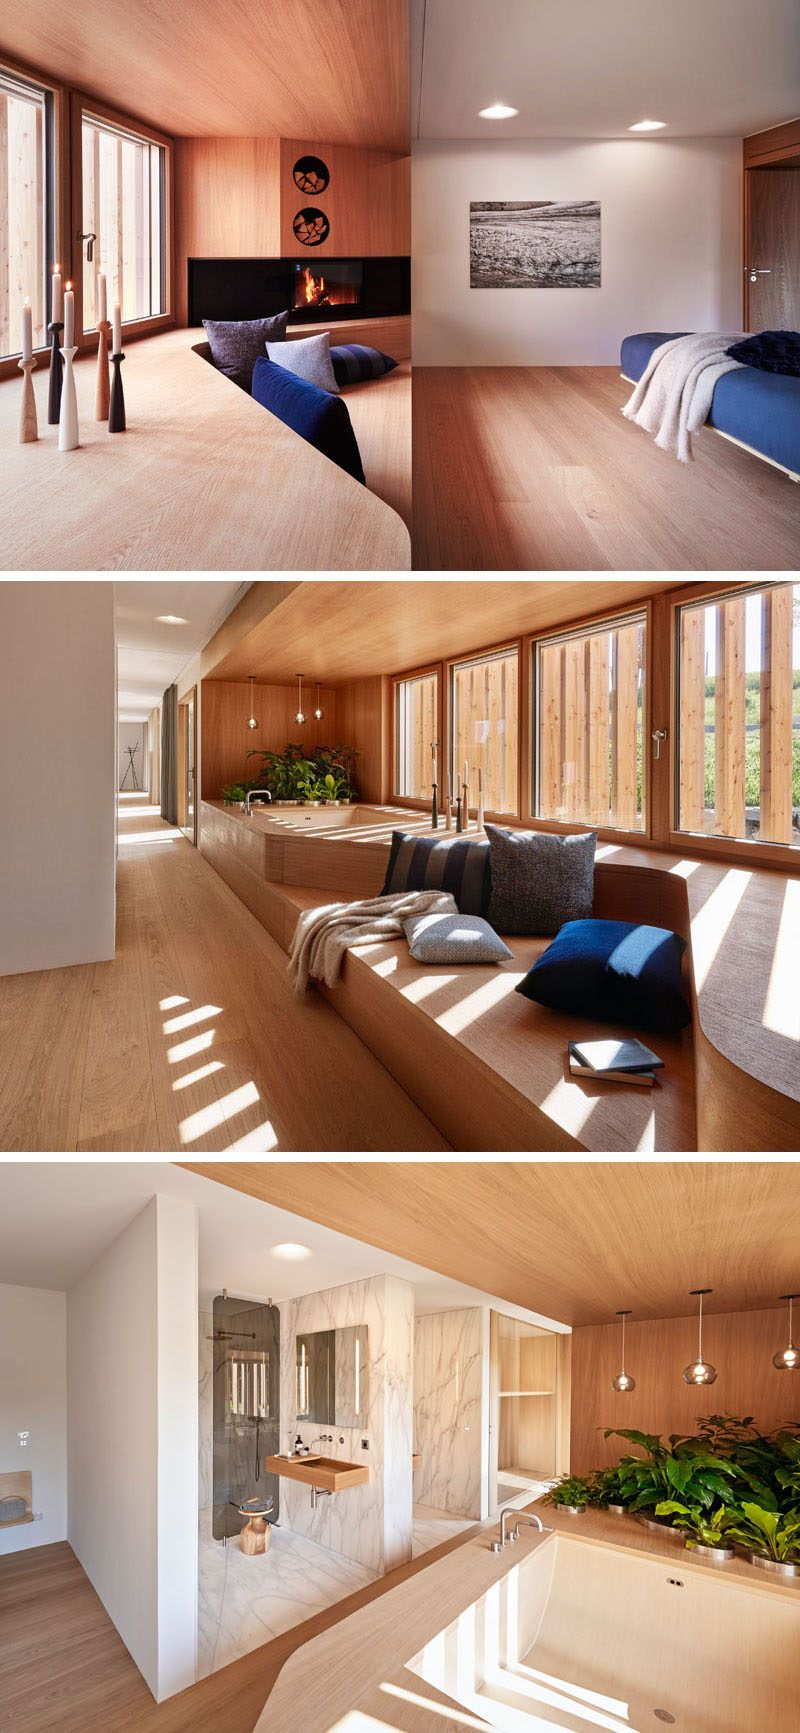 Alfredo Häberli Design Development have recently completed a house designed to showcase Baufritz's expertise in wood home construction.